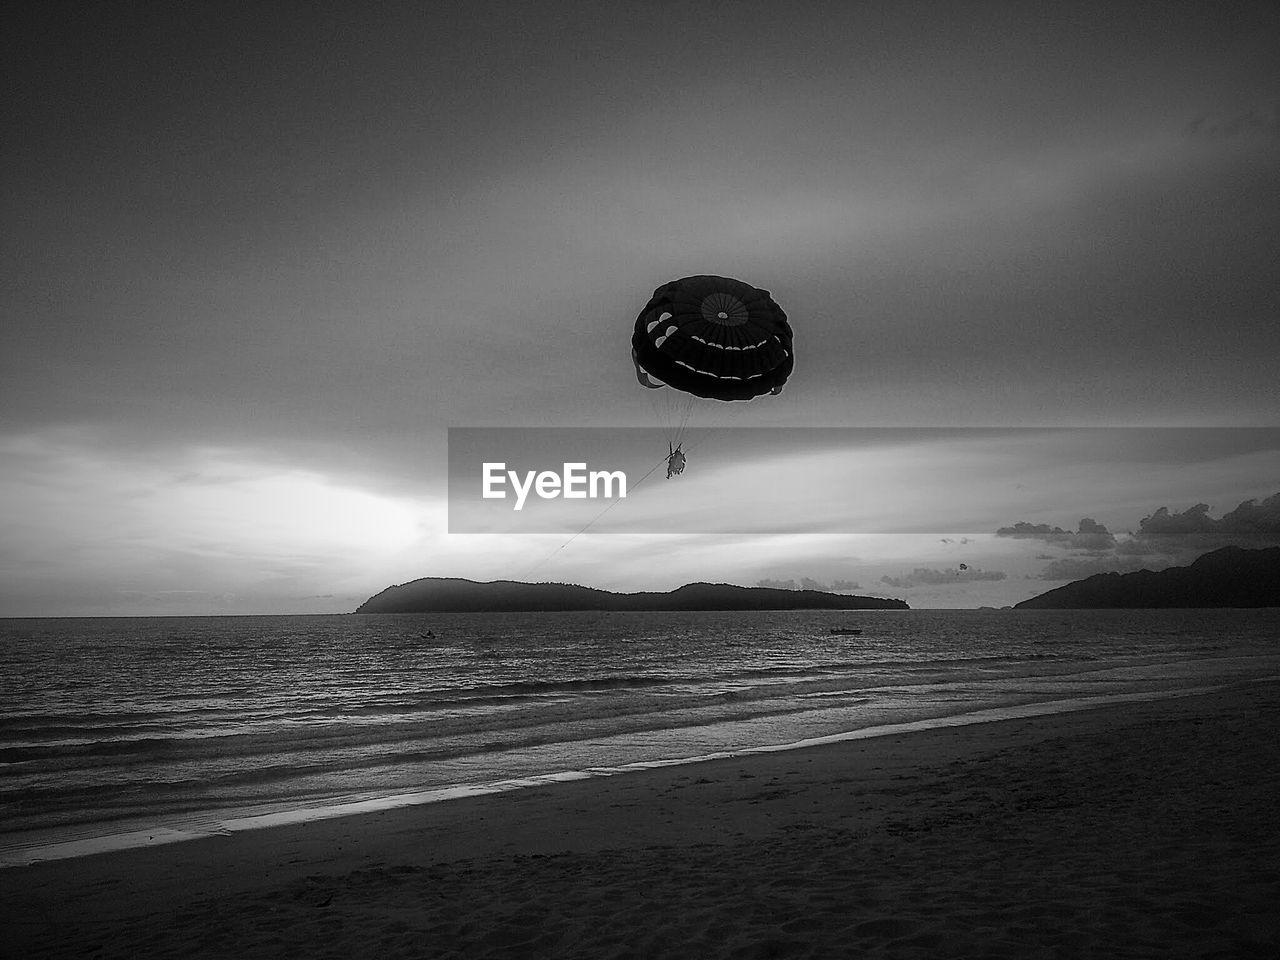 Person paragliding over beach against sky